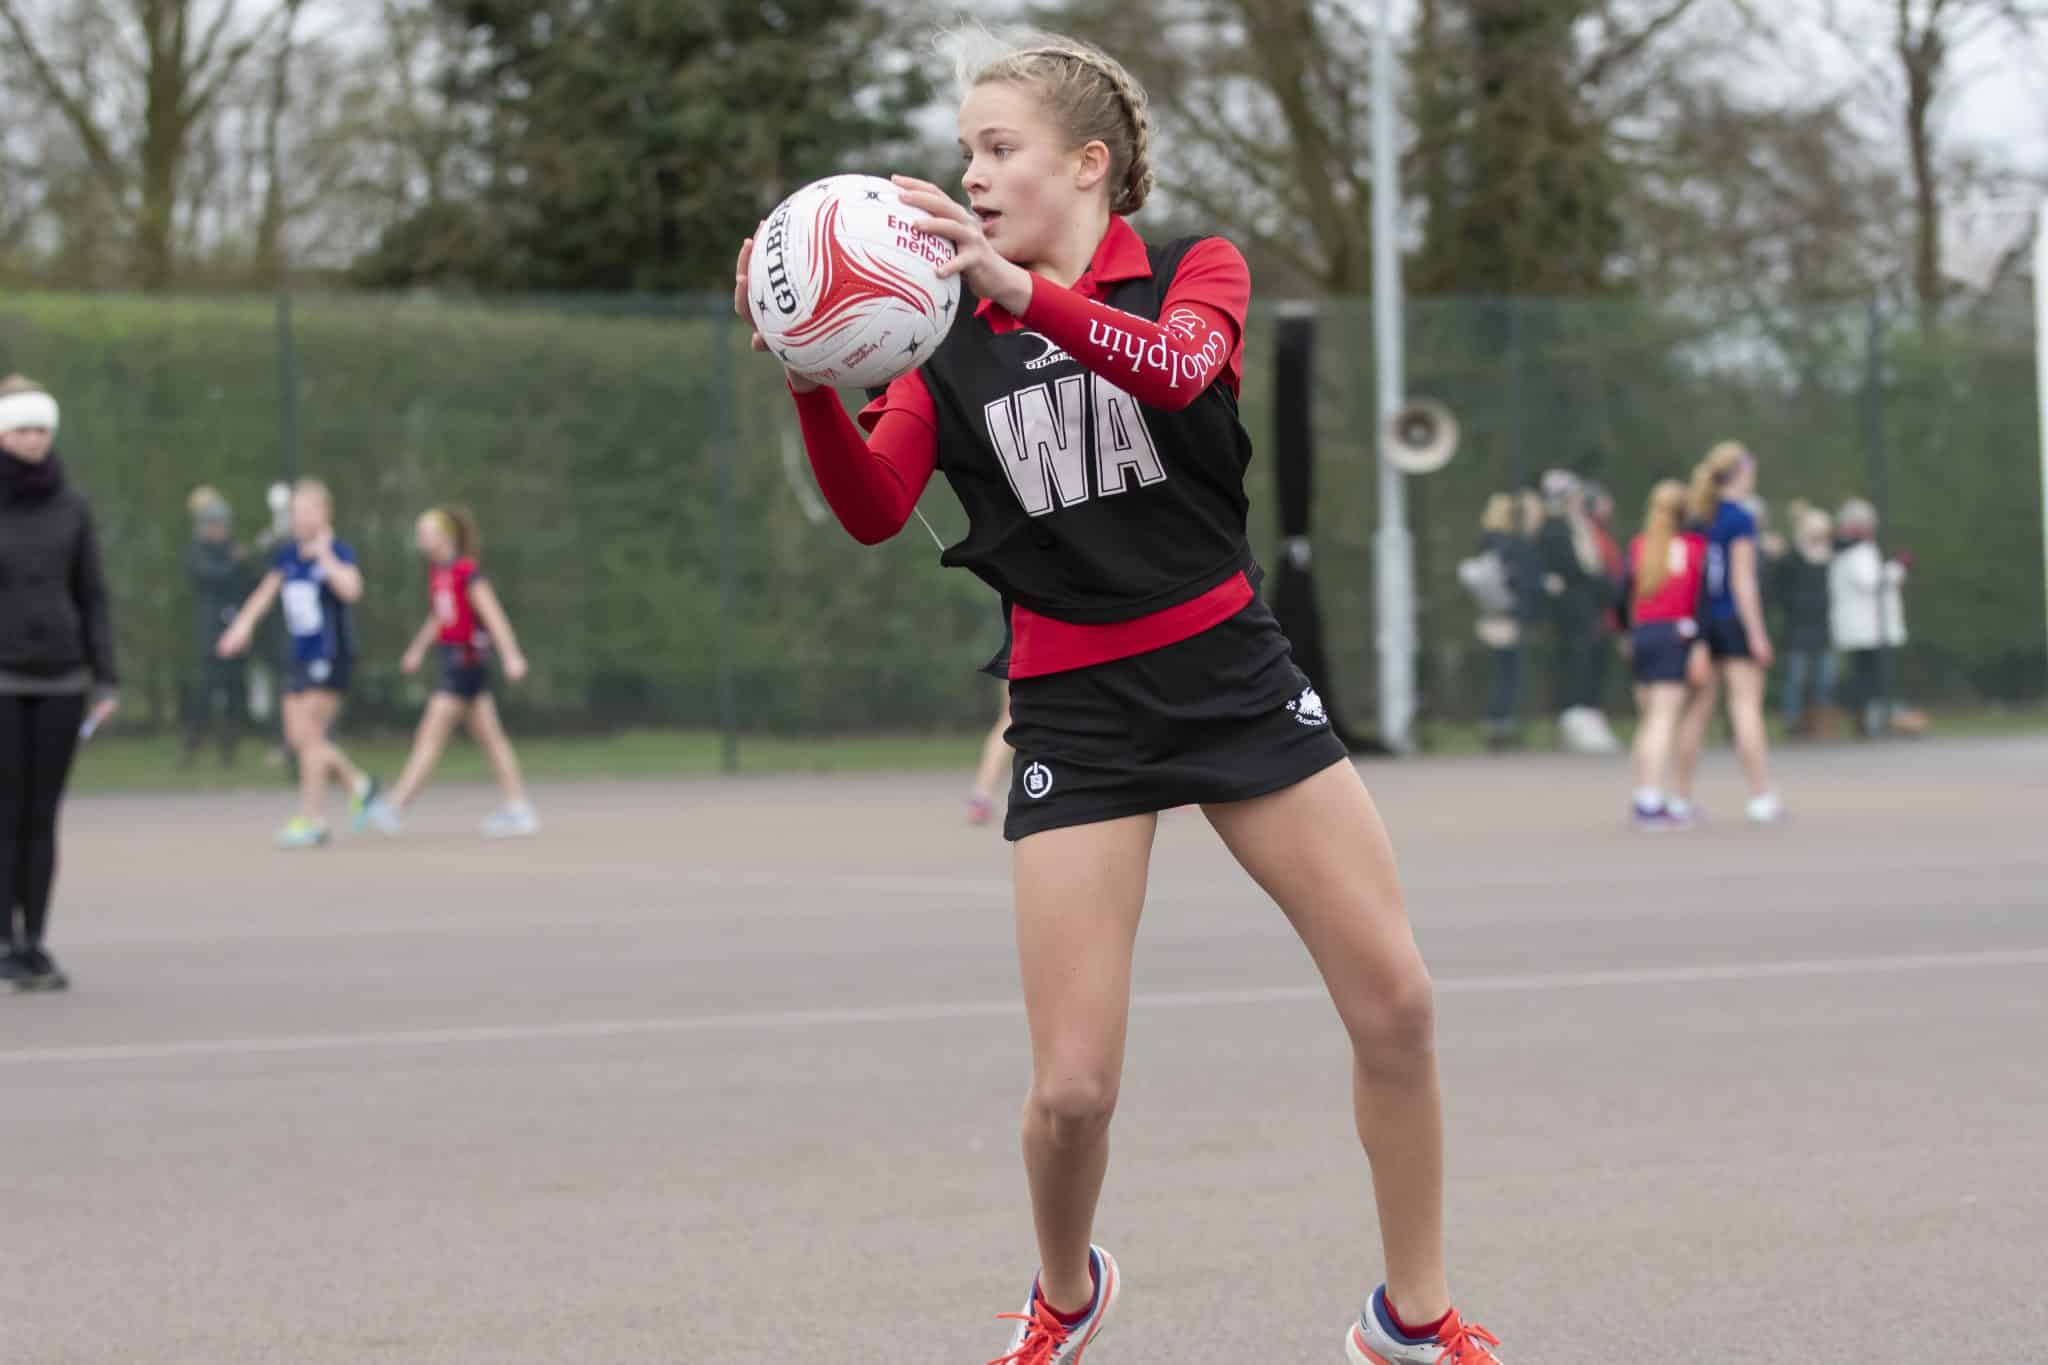 Godolphin & Latymer's U14 & U16 Netball squad at the National Sc